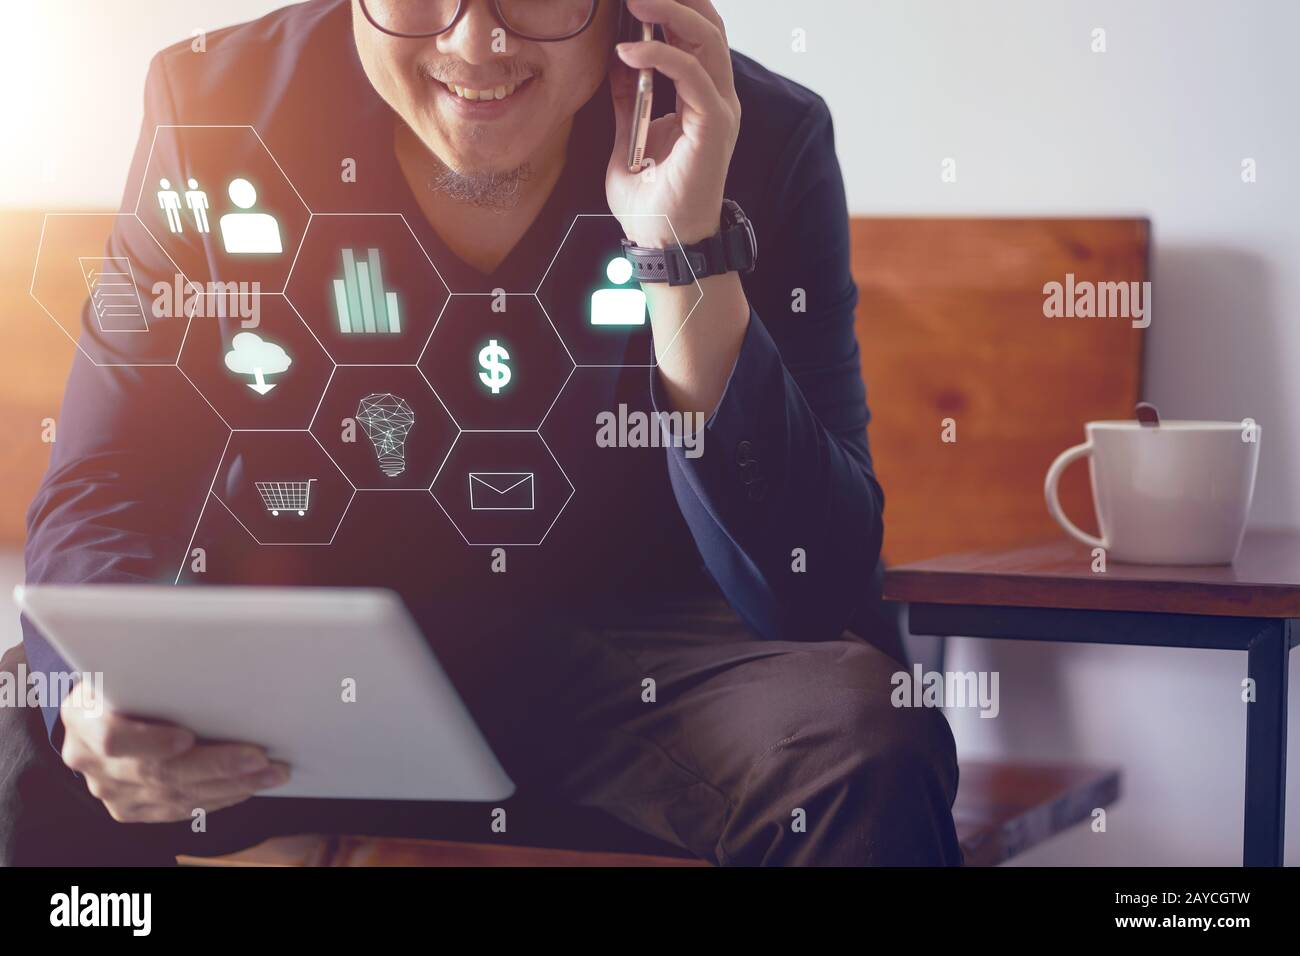 Man holding digital tablet making online shopping and banking payment. Blurred background . Stock Photo